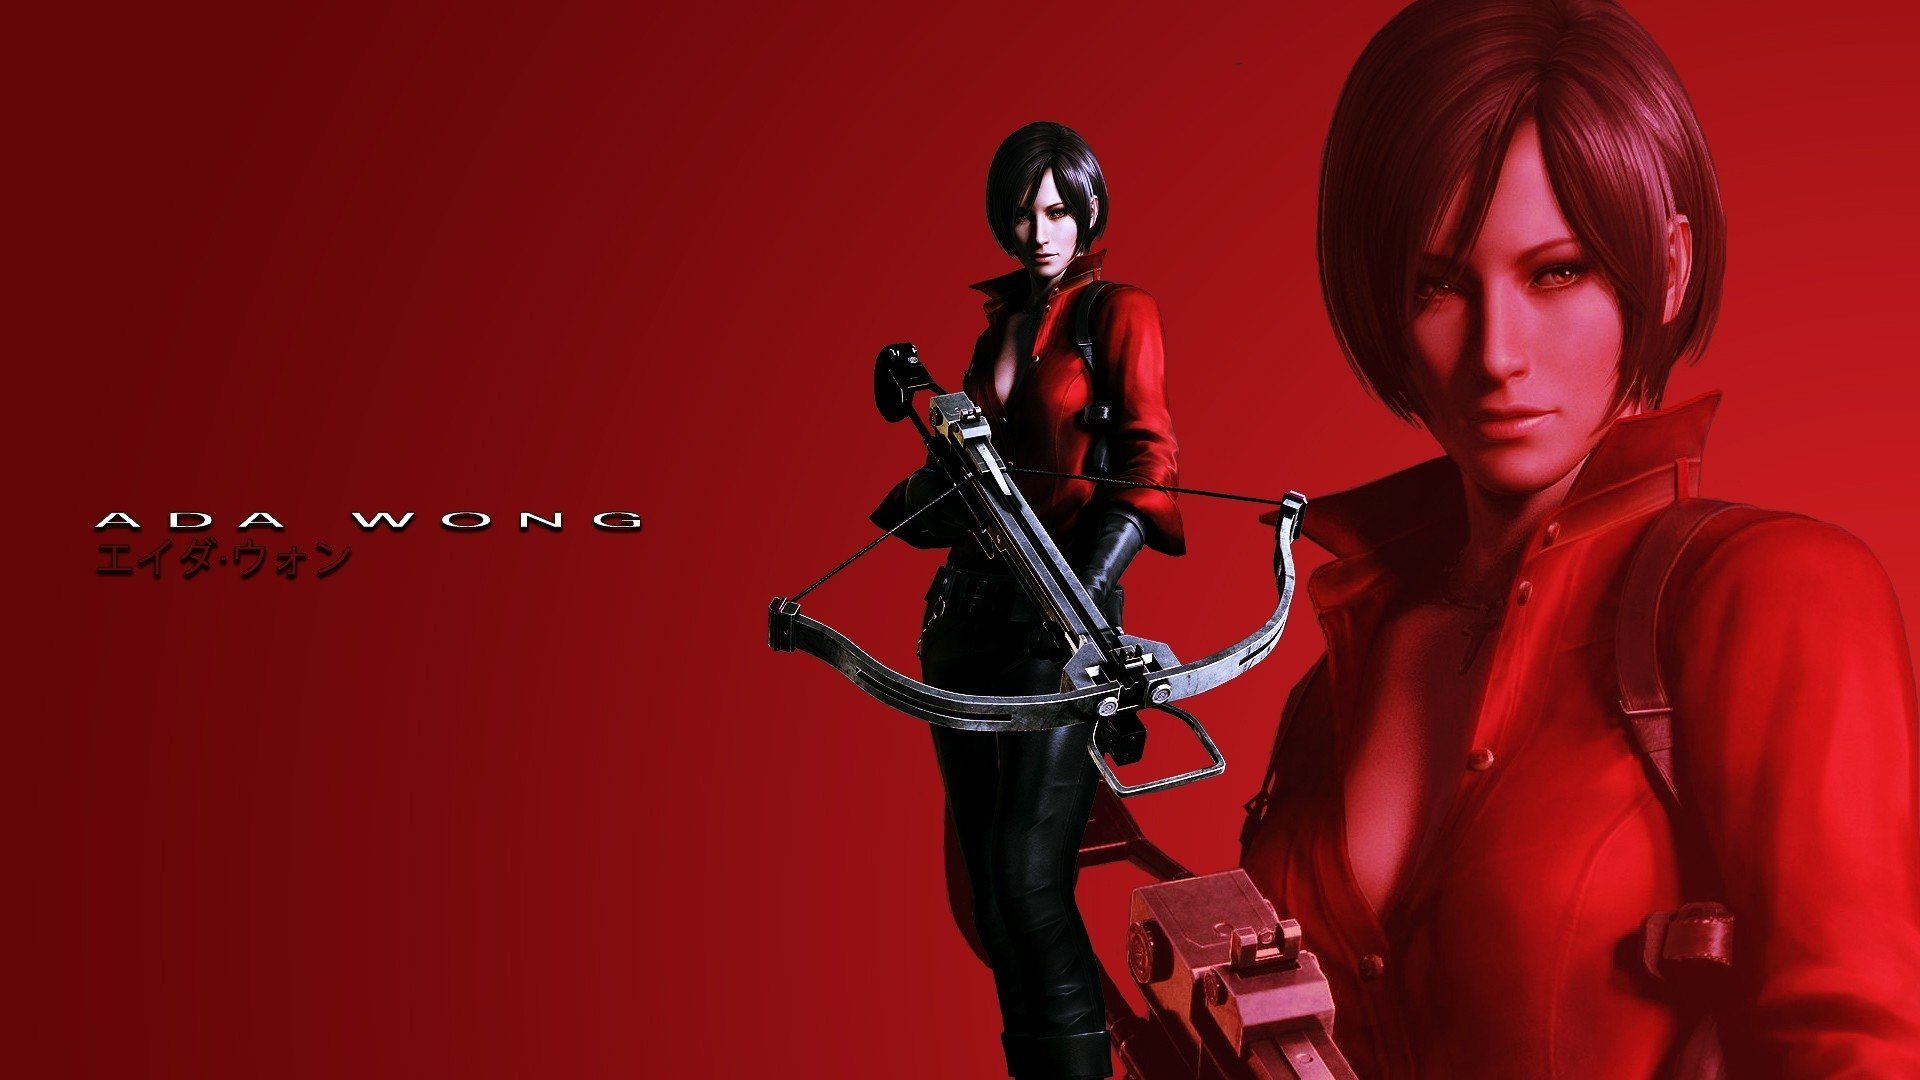 233 Resident Evil 6 HD Wallpapers   Backgrounds - Wallpaper Abyss ...